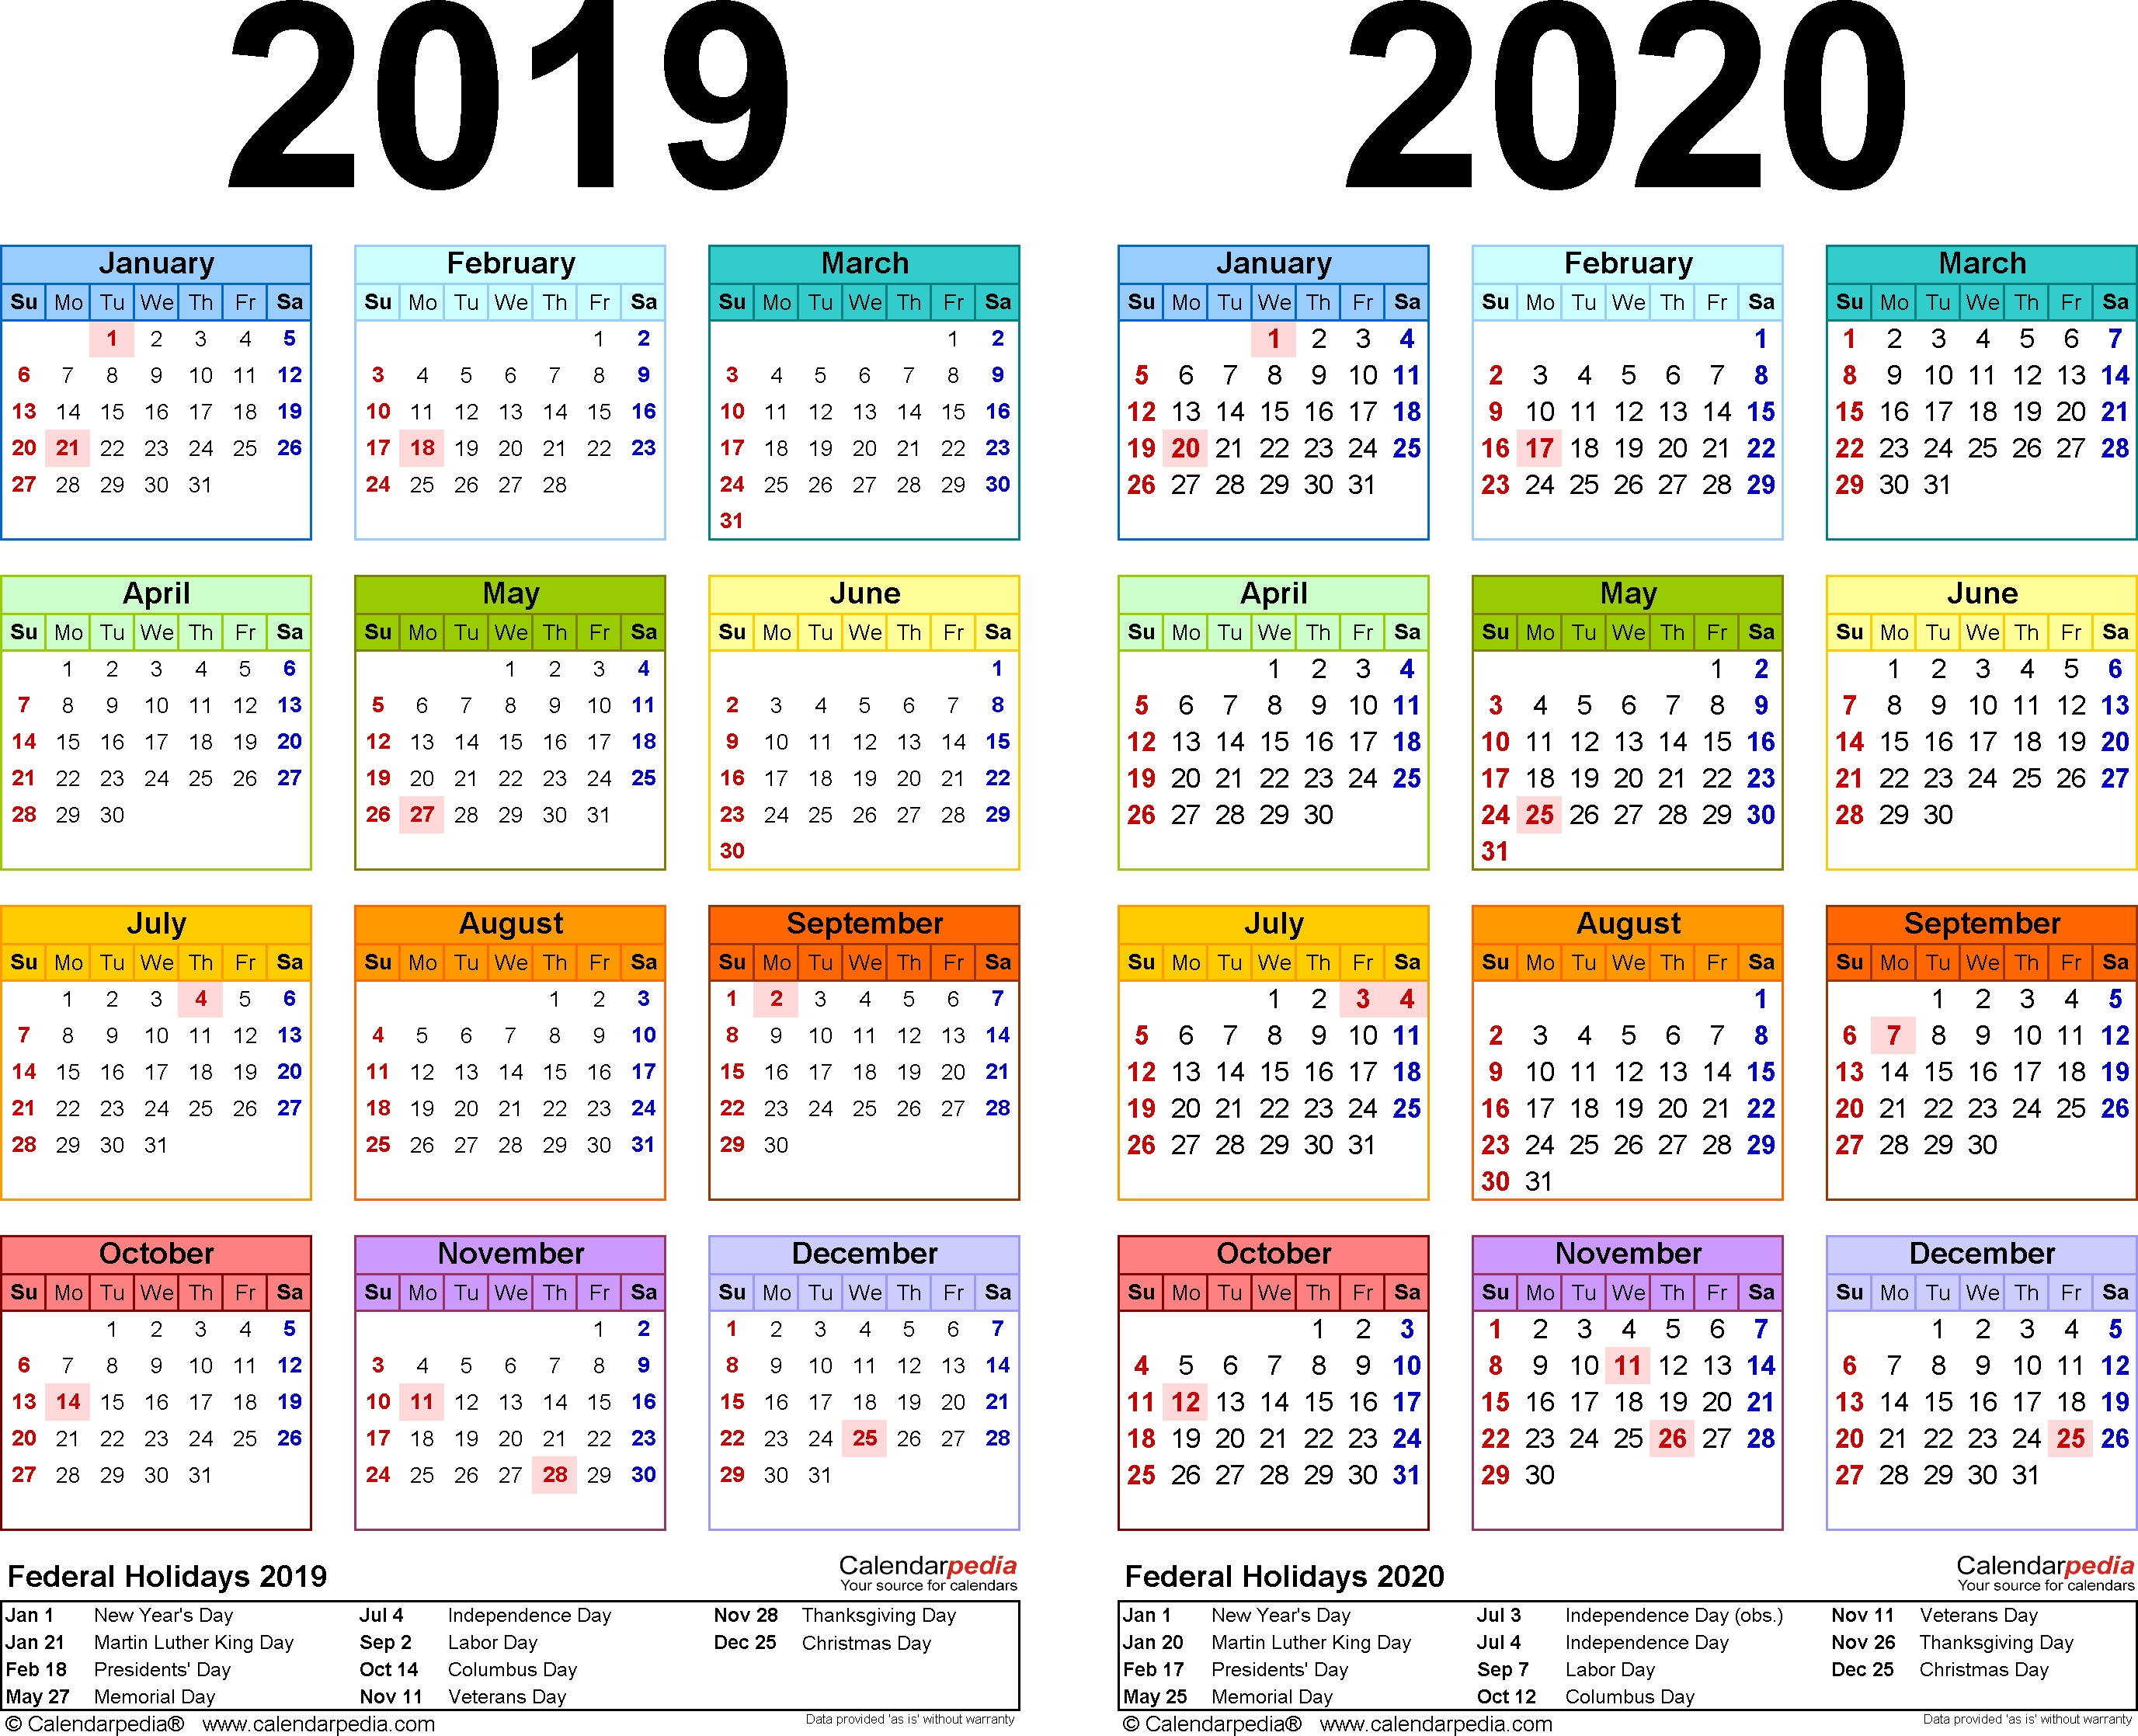 2019-2020 Calendar - Free Printable Two-Year Excel Calendars-Calendar 2020 Monthly Business And Next Month